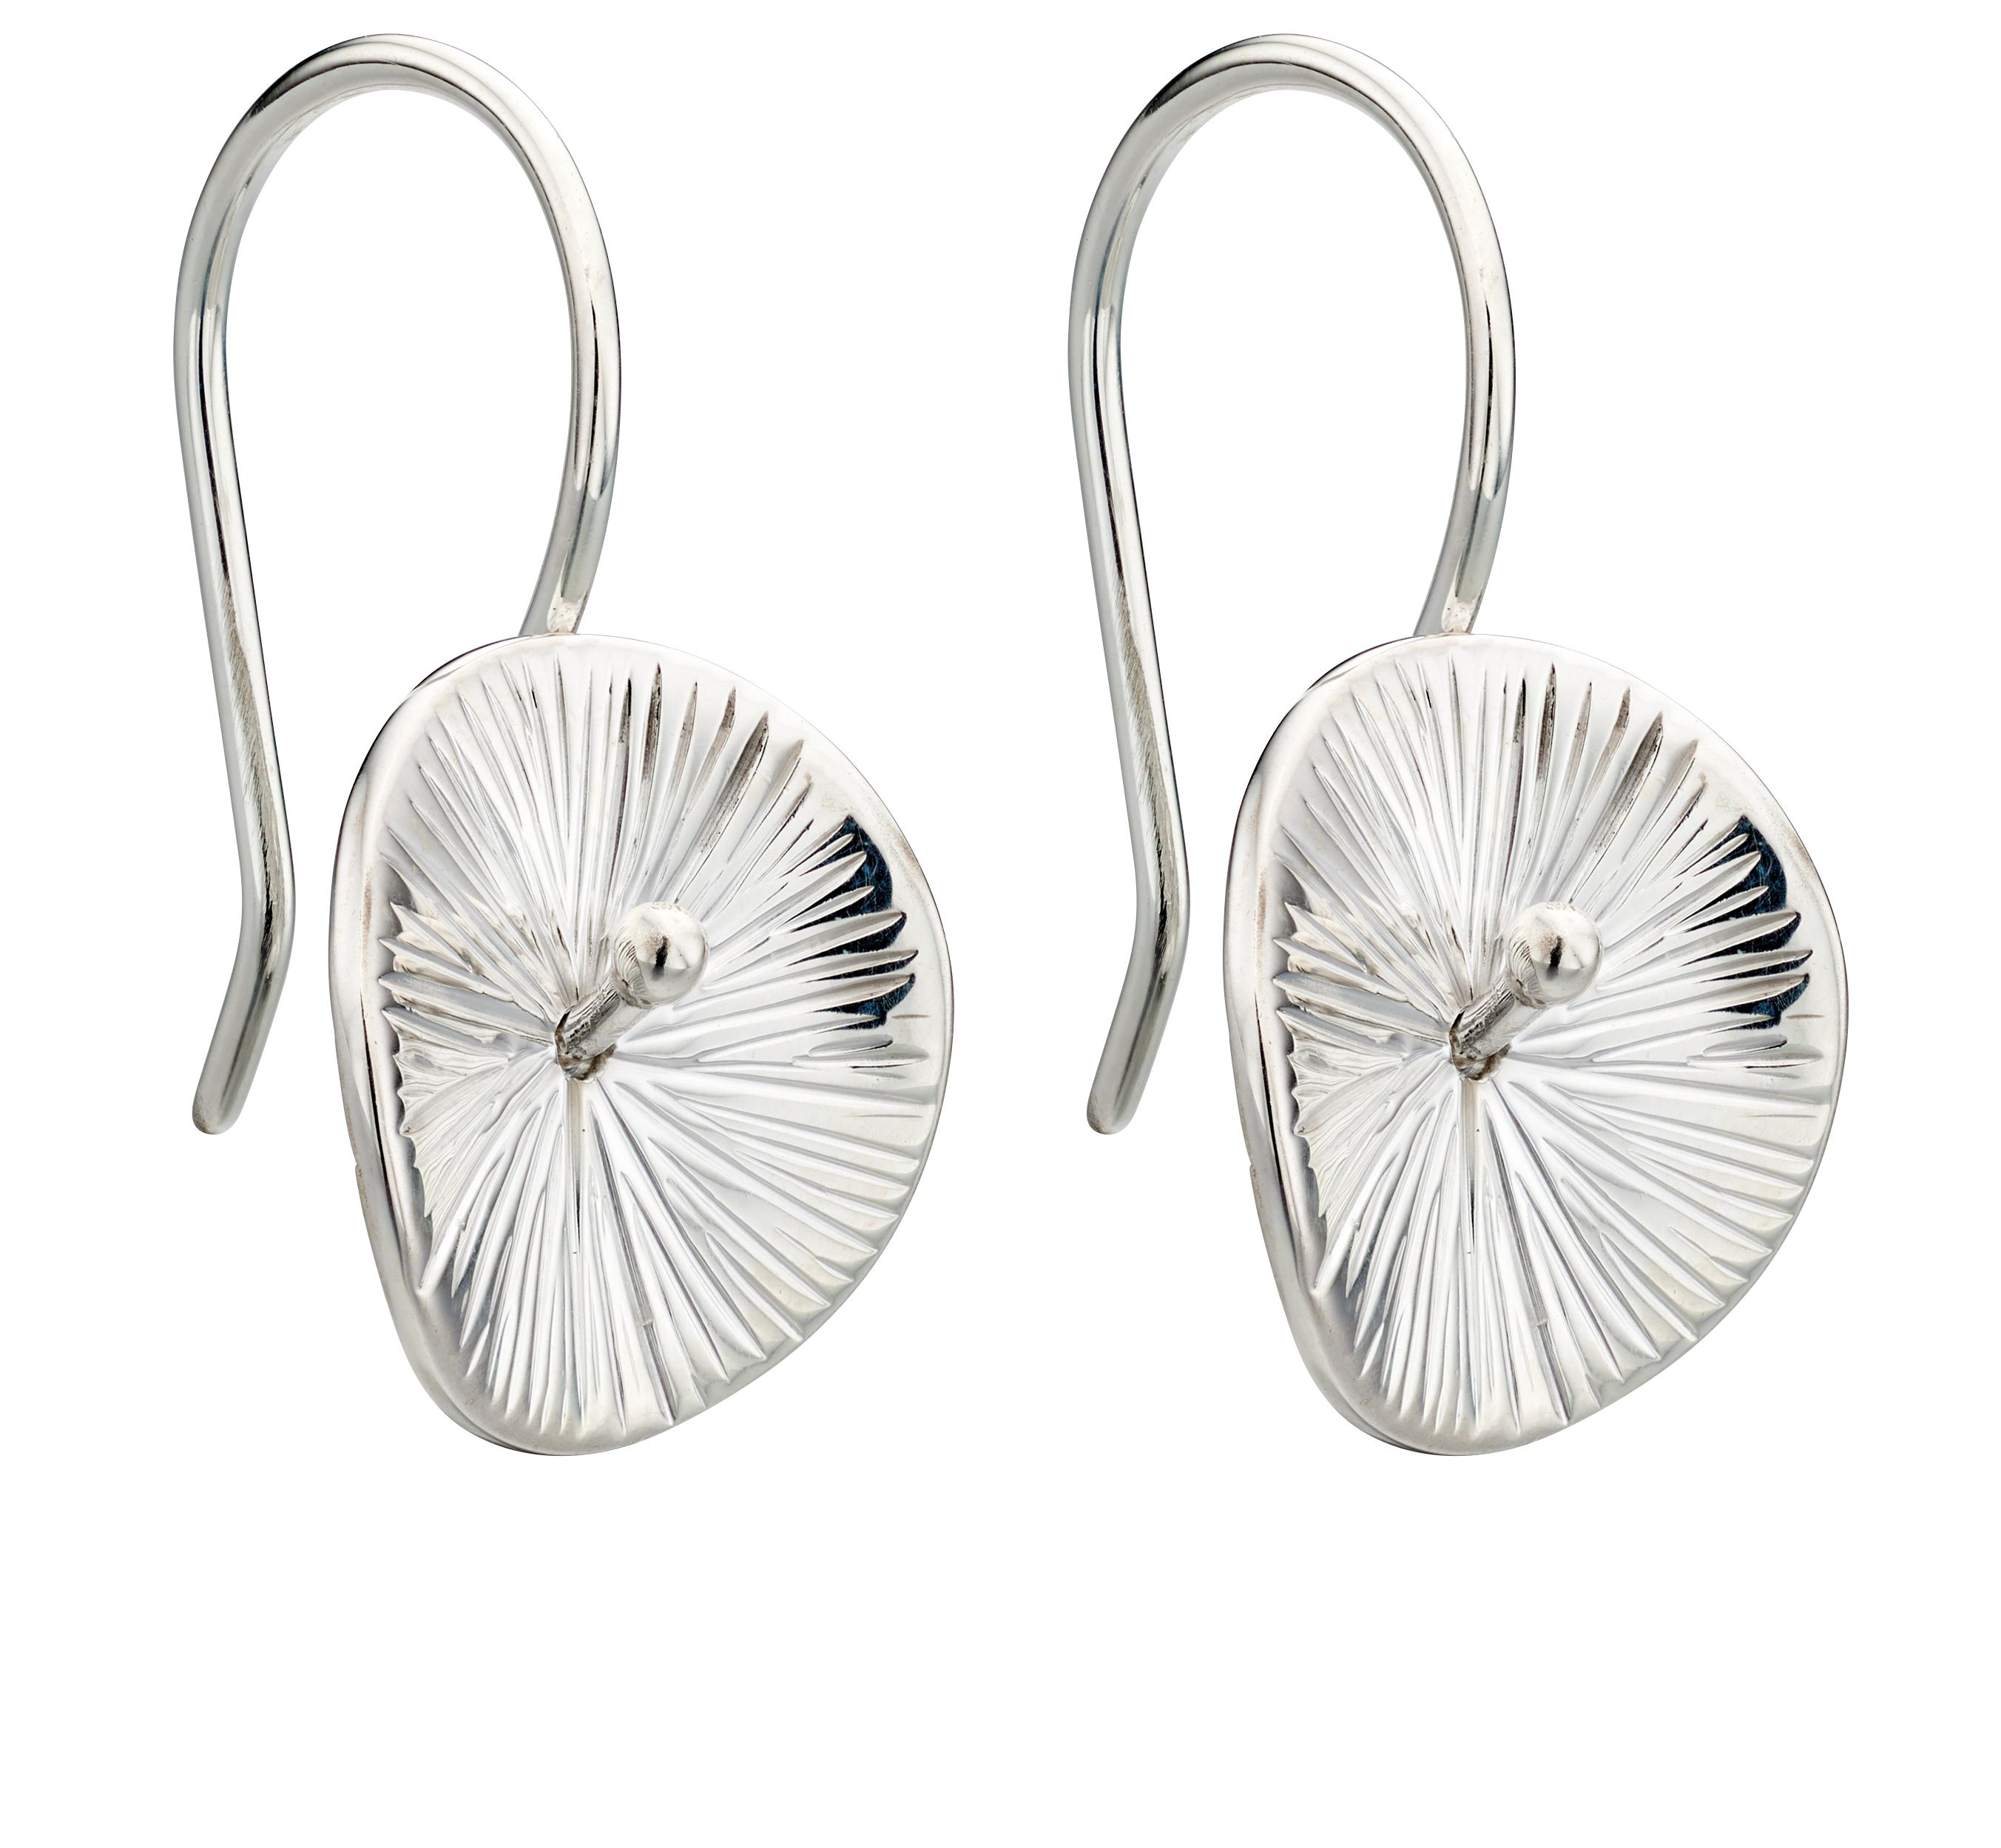 Elements Silver Womens 925 Sterling Silver Scratched Finish Disc Dangle Hook Earrings E5521